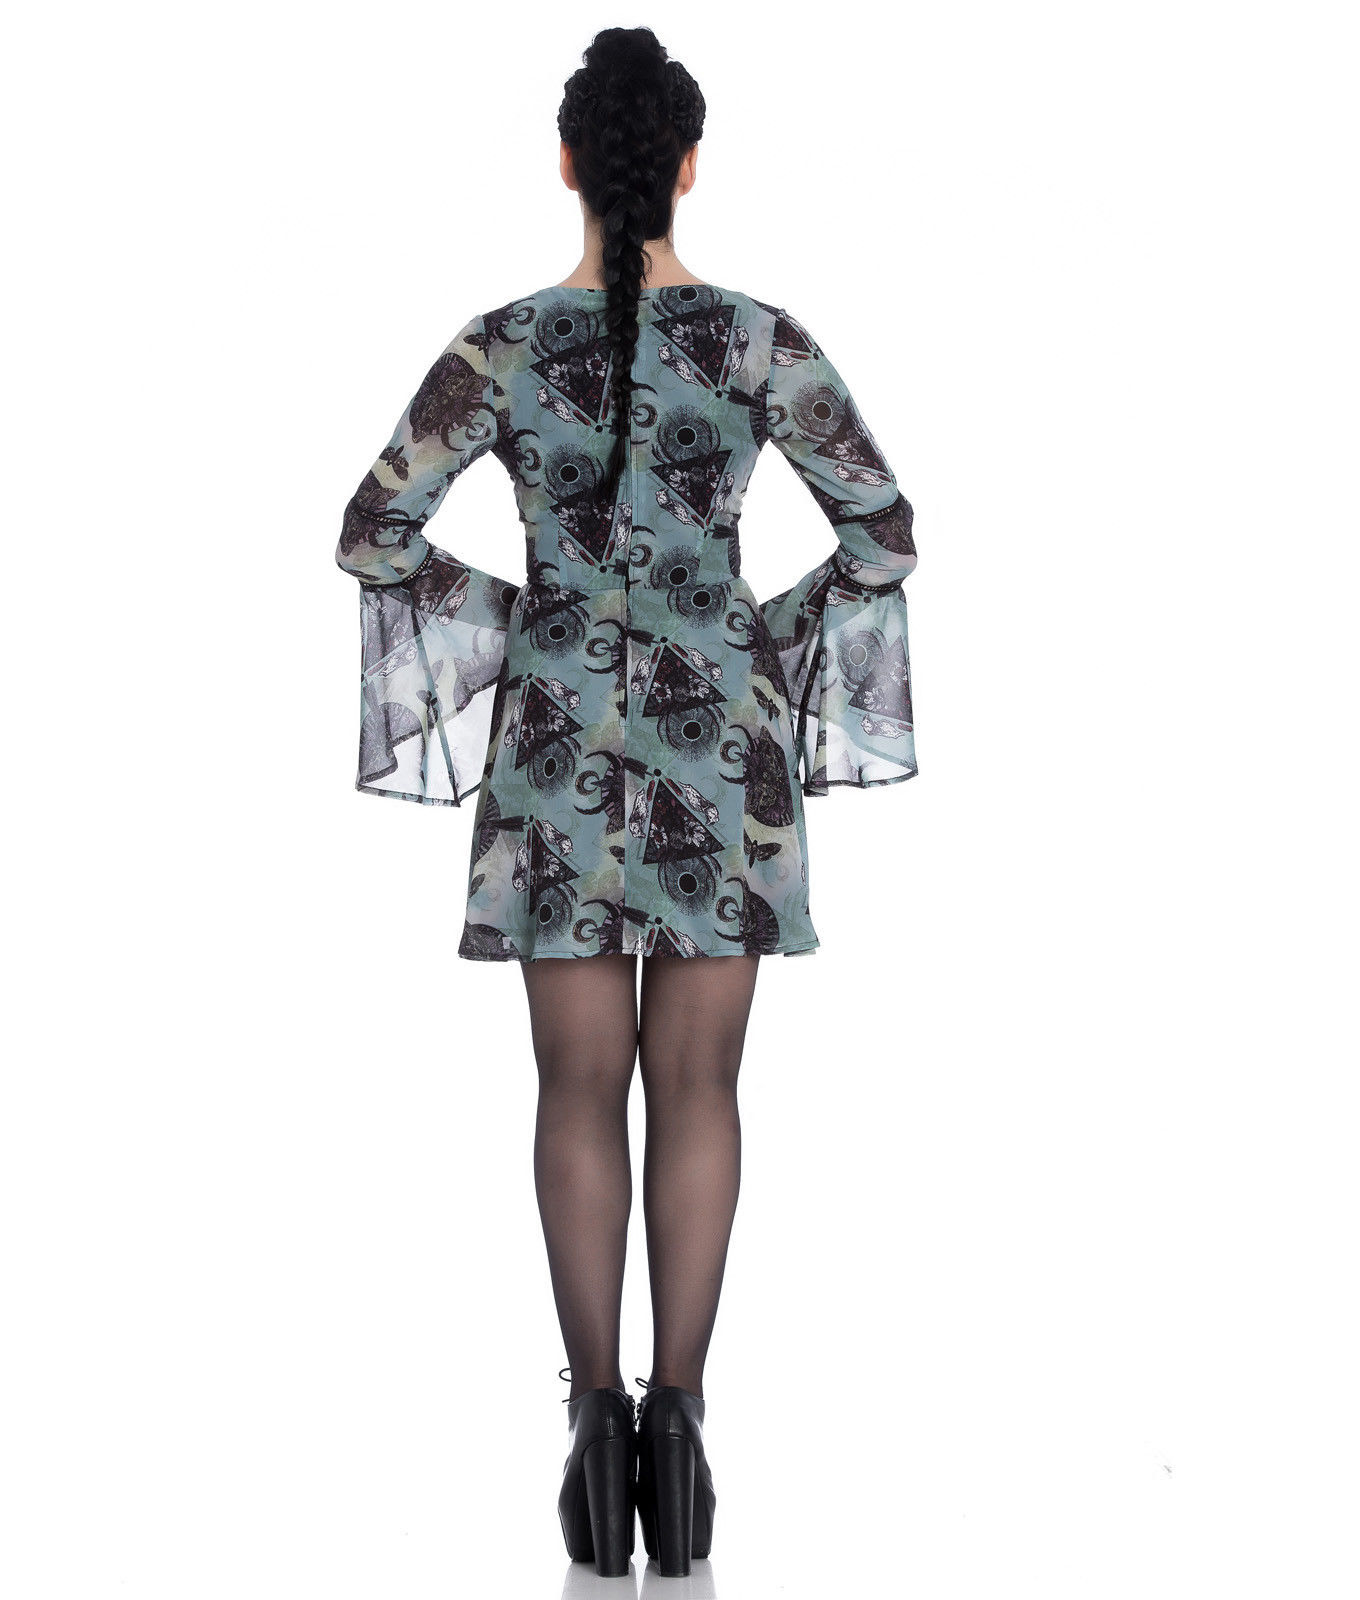 Hell-Bunny-Alchemy-Goth-Floaty-Witch-Mini-Dress-AFTER-DEATH-Teal-Green-All-Sizes thumbnail 17